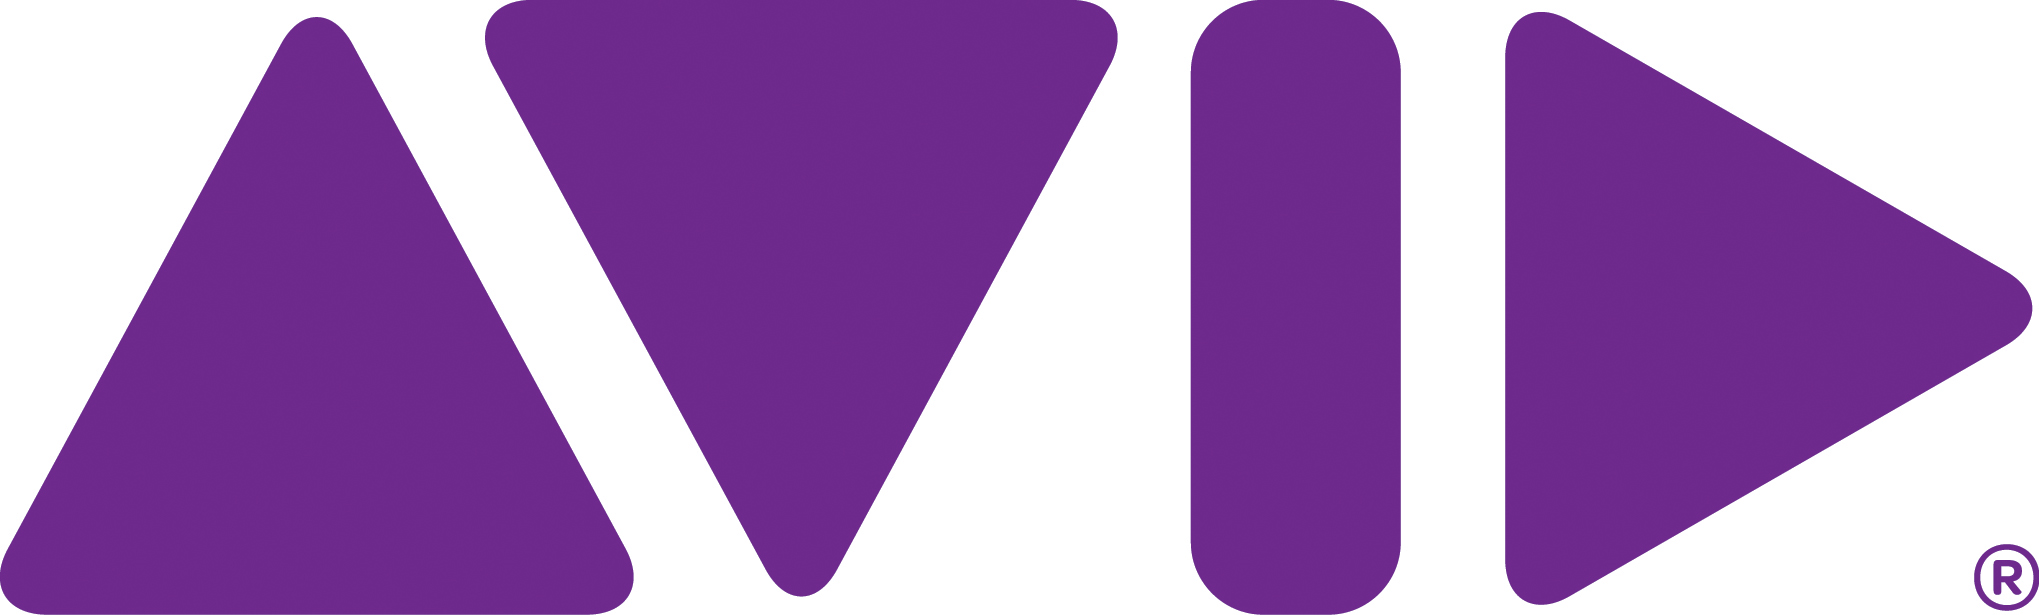 Avid Marketplace Offers Powerful New Features and Expanded Partner Roster